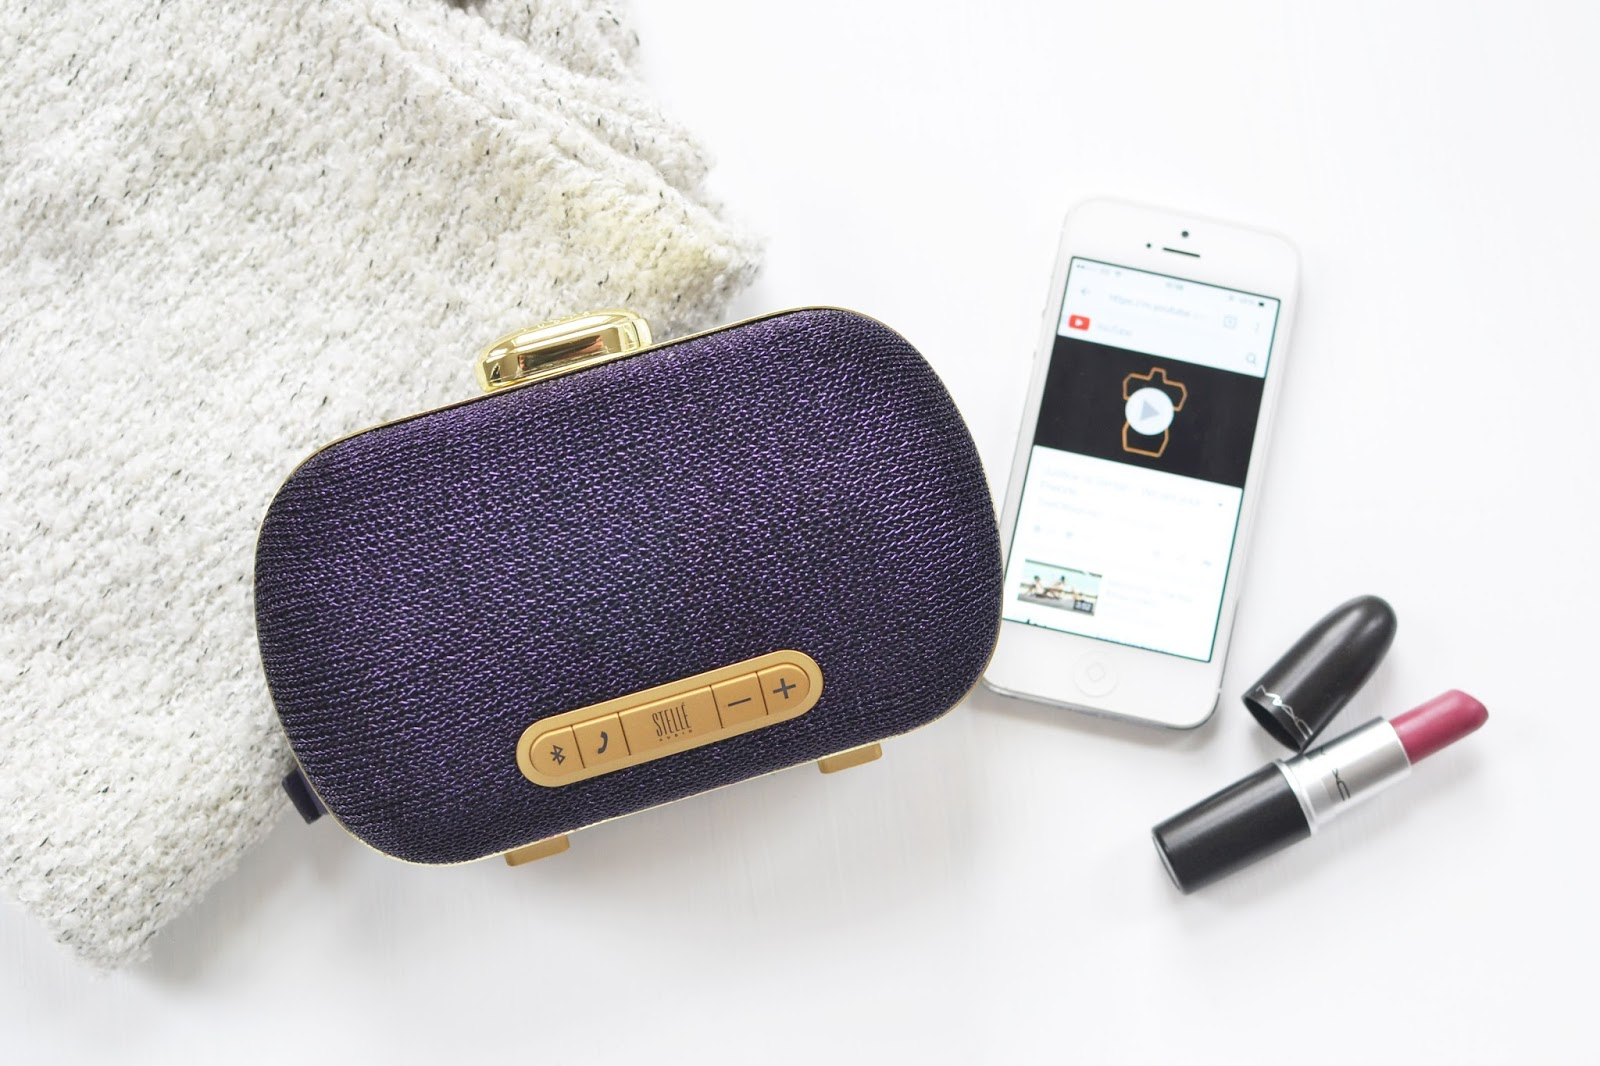 wearable technology, stelle audio, stelle audio mini clutch speaker